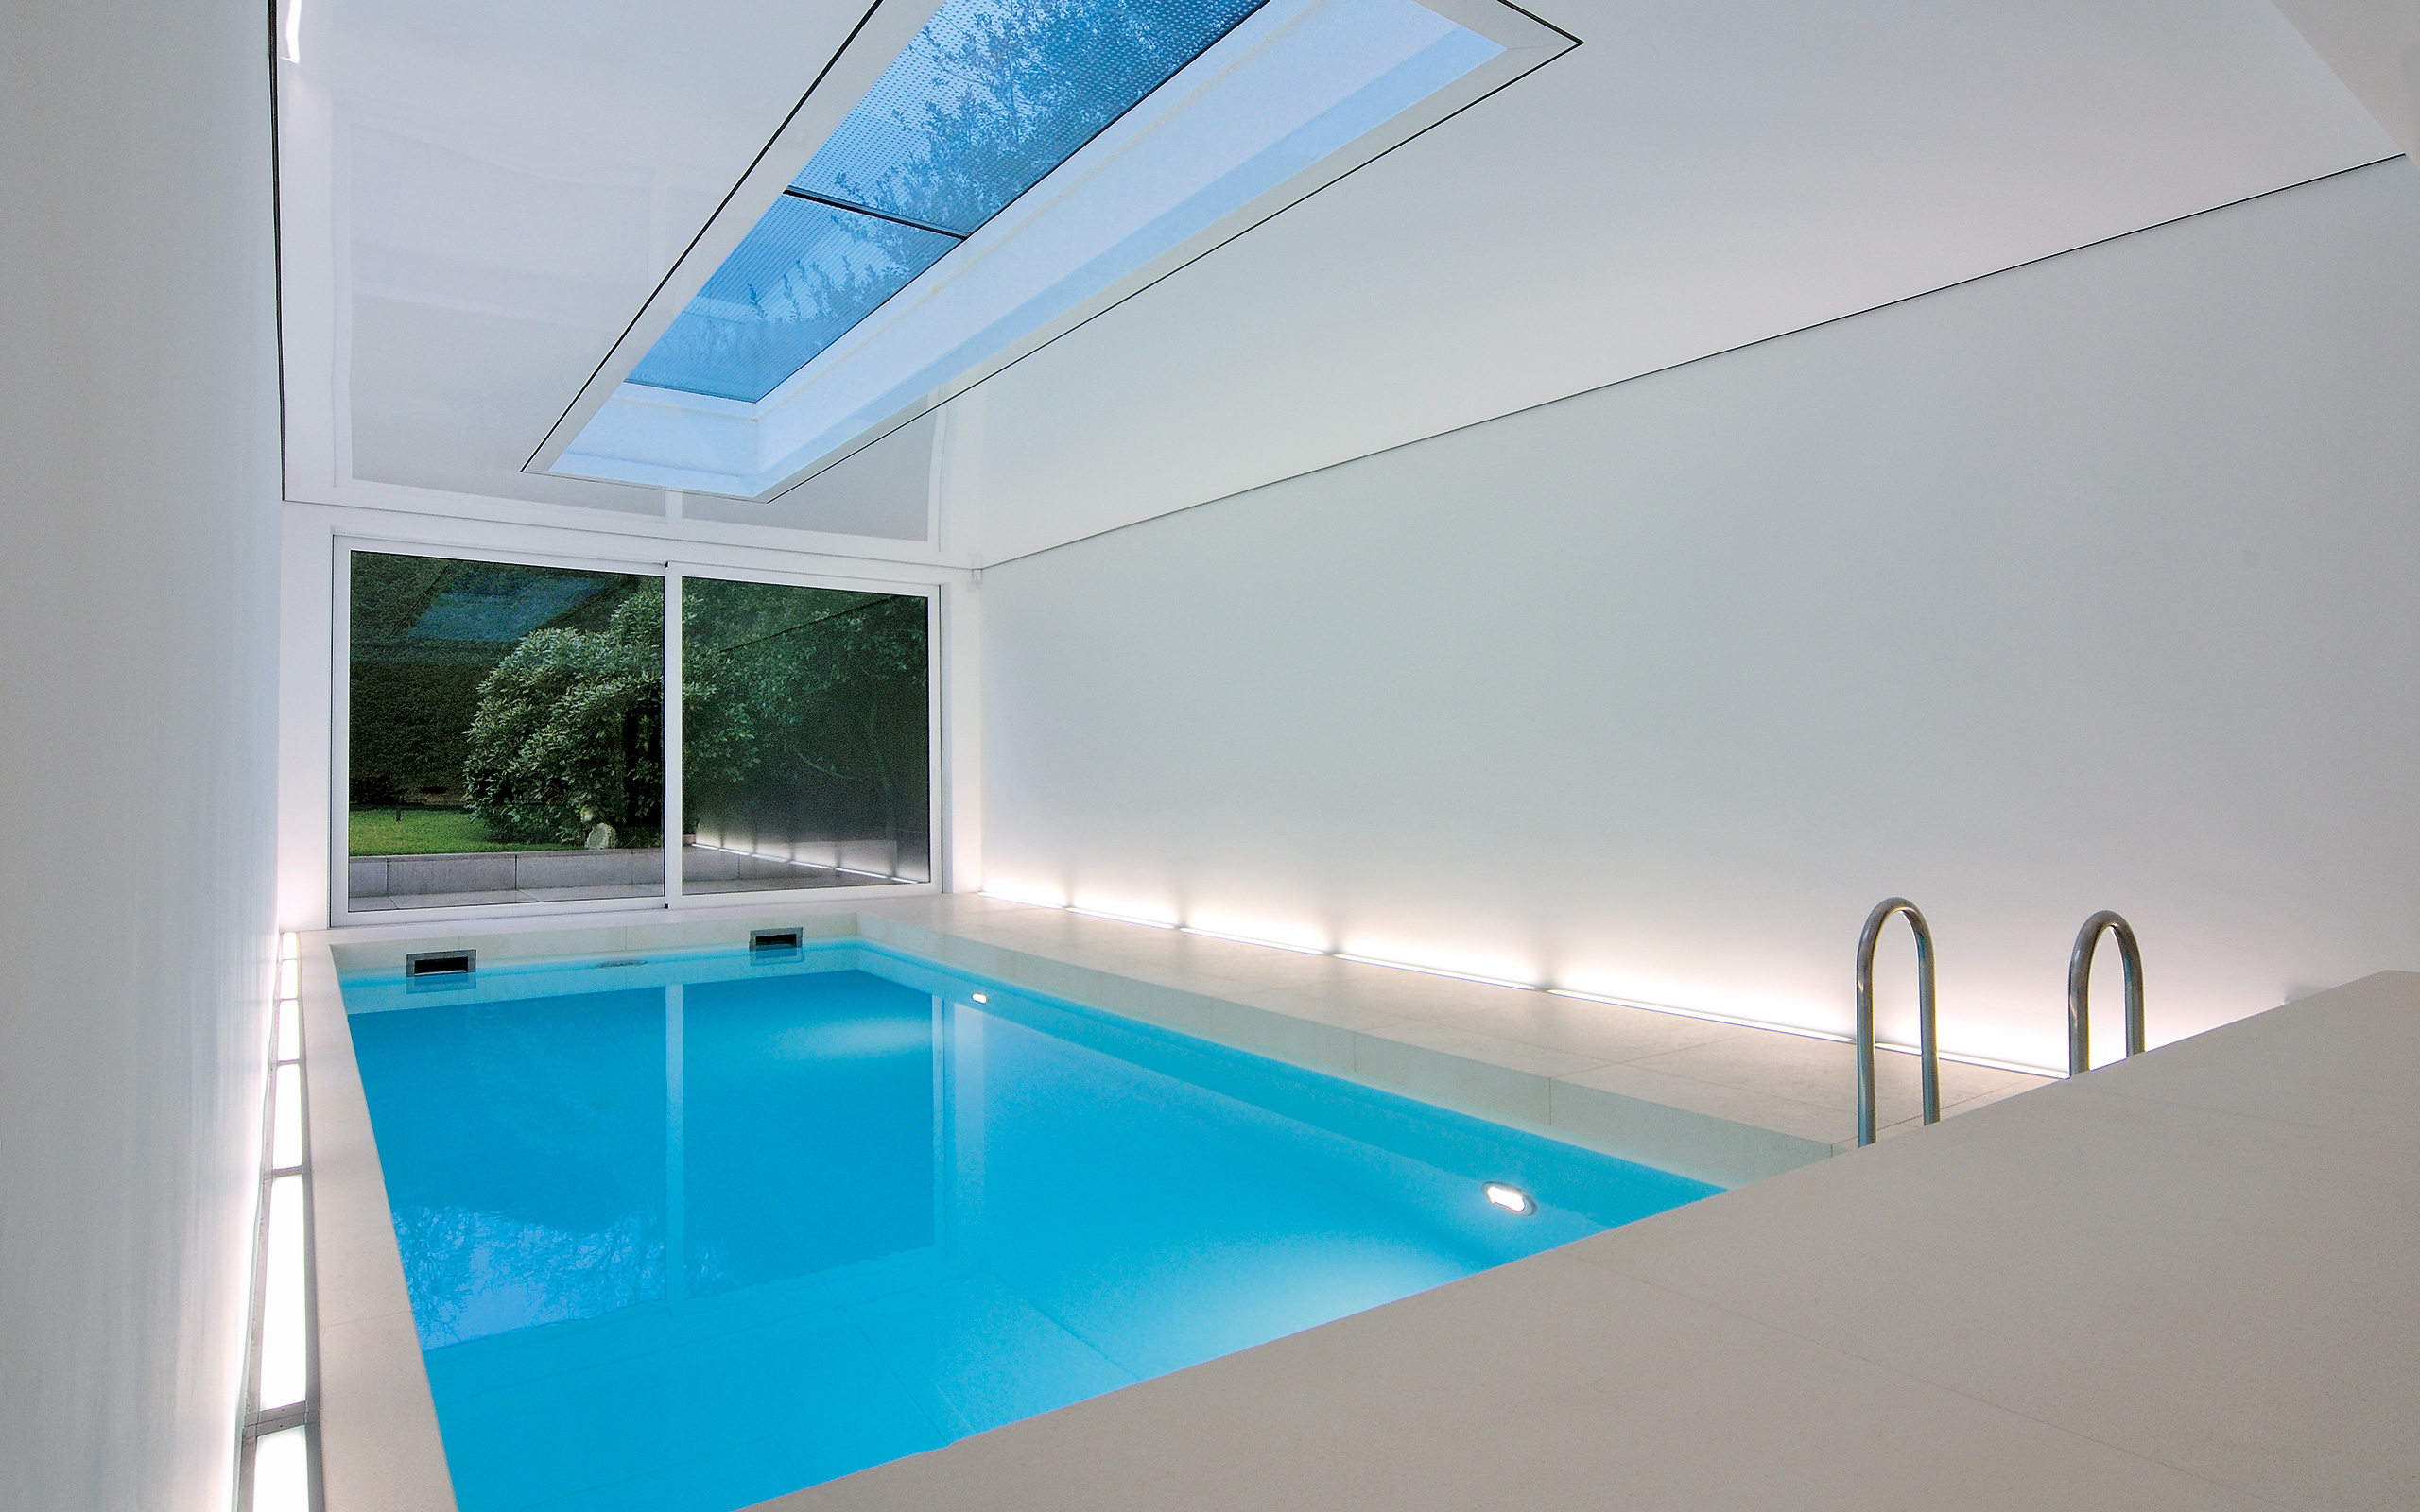 Whirlpools, Pool, Cold Plunge By Klafs Whirlpool Designs Innen Ausen